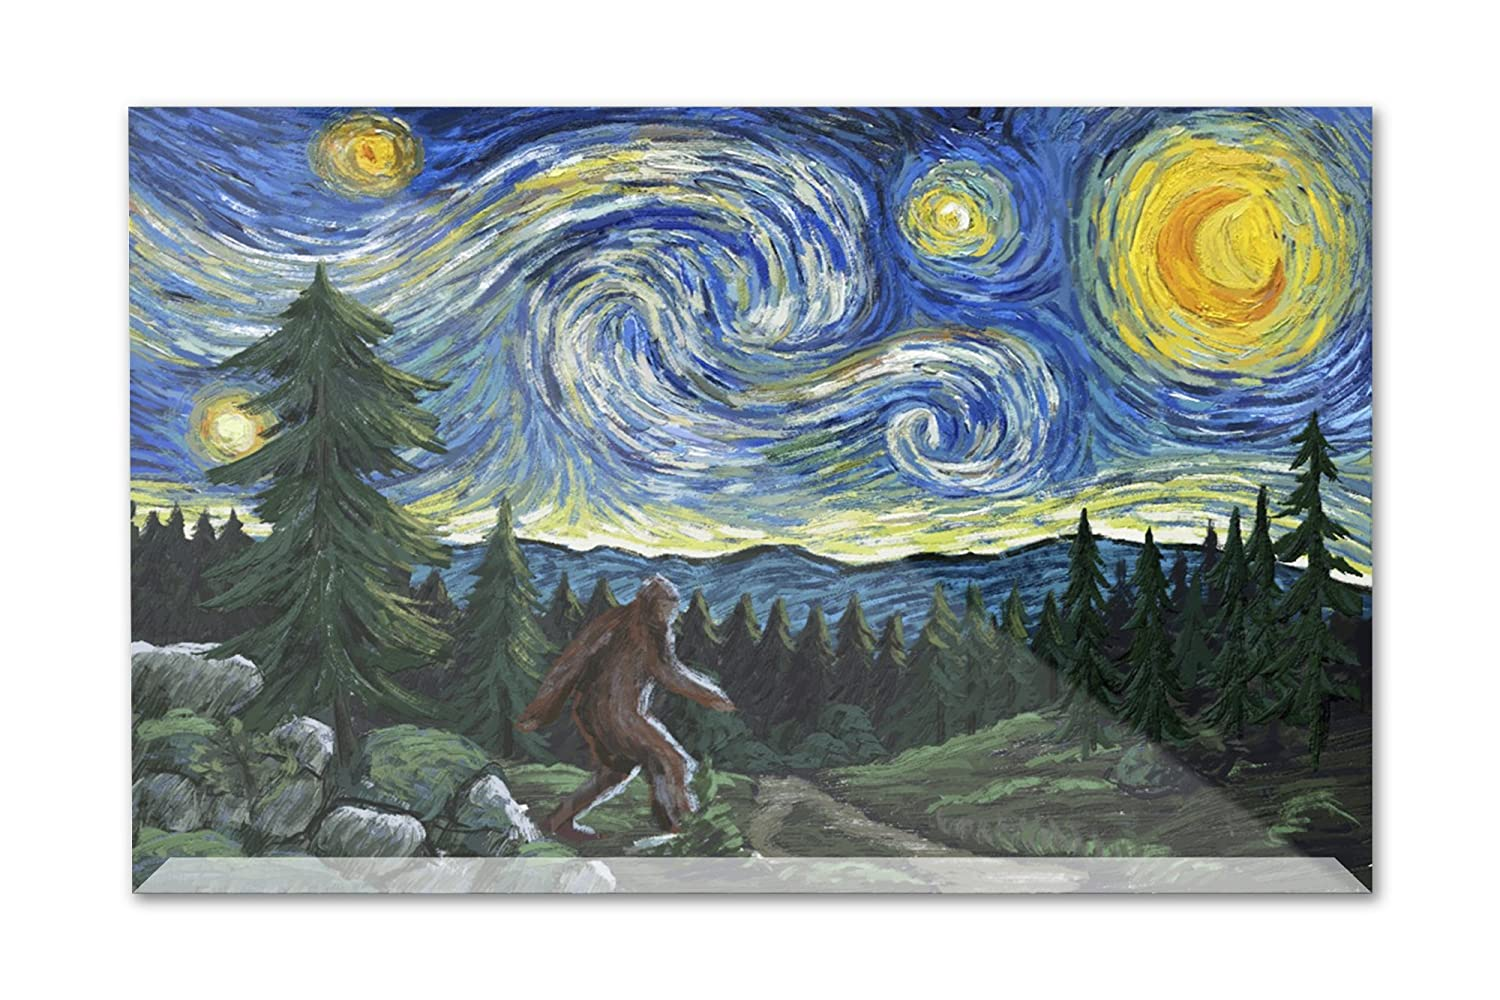 Northwest – Van Gogh Starry Night – Bigfoot 12 x 8 Acrylic Photo Block Decor LANT-3P-AC-PB-81018-8x12 12 x 8 Acrylic Photo Block Decor  B072PZ6TCY